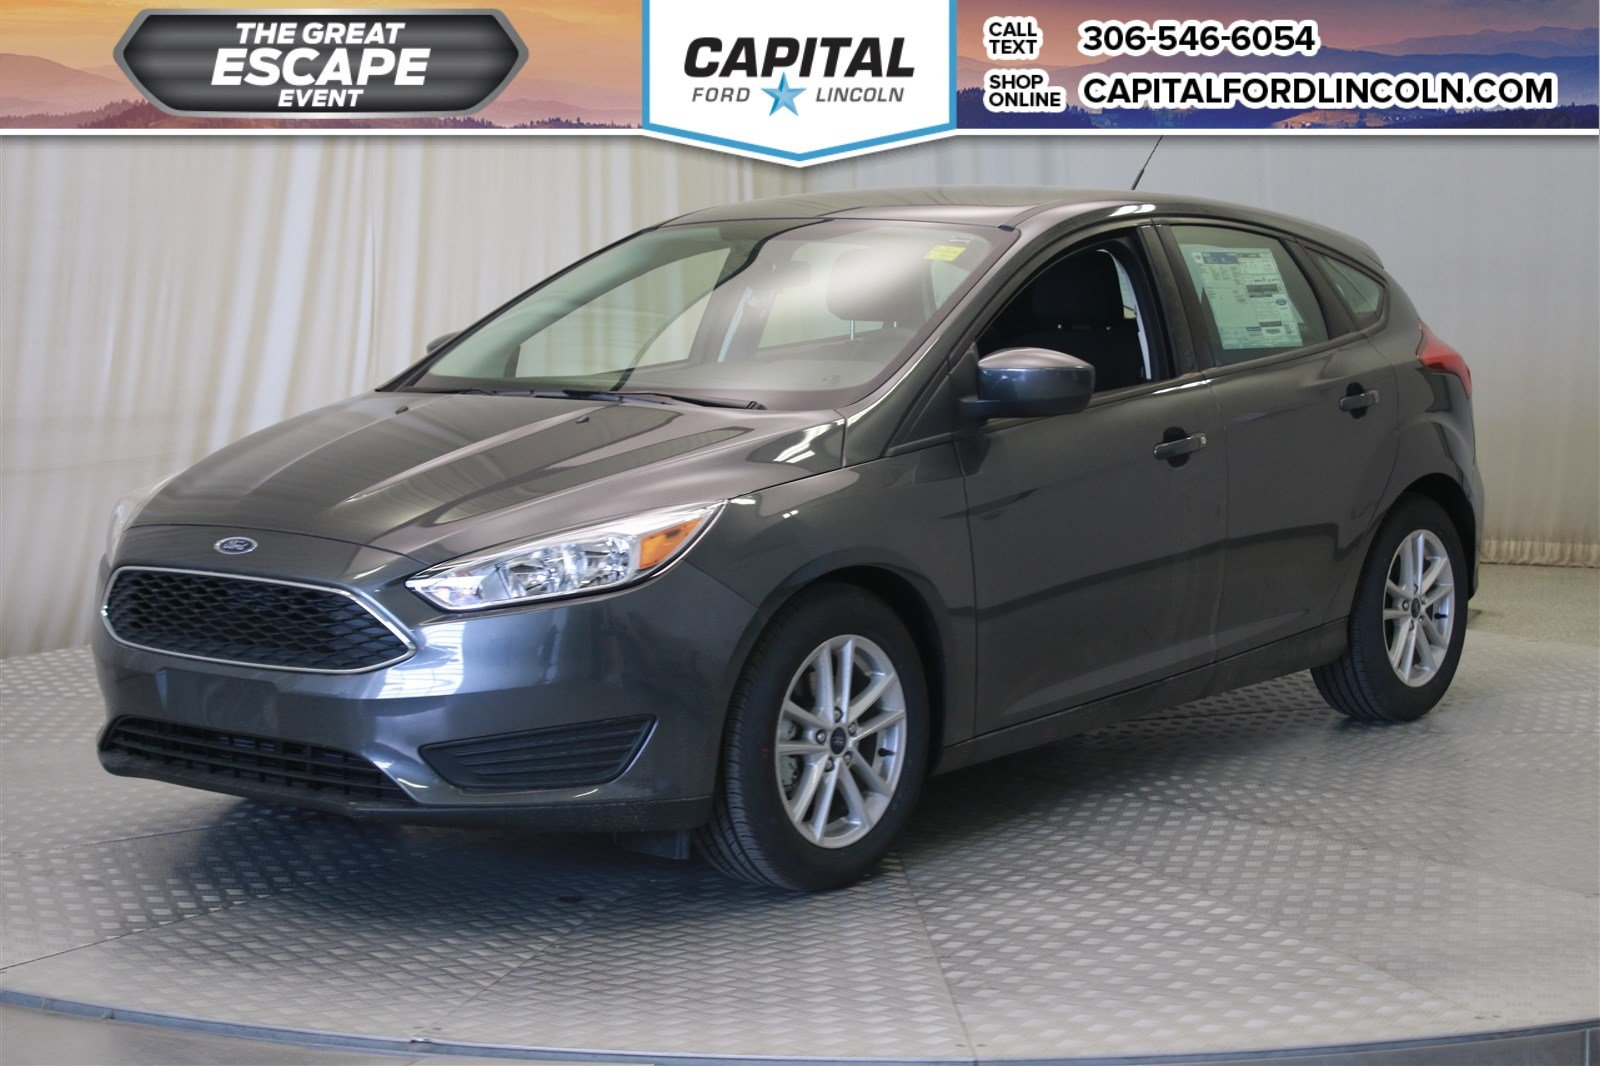 hatchback fwd inventory winnipeg ford in new se capital focus